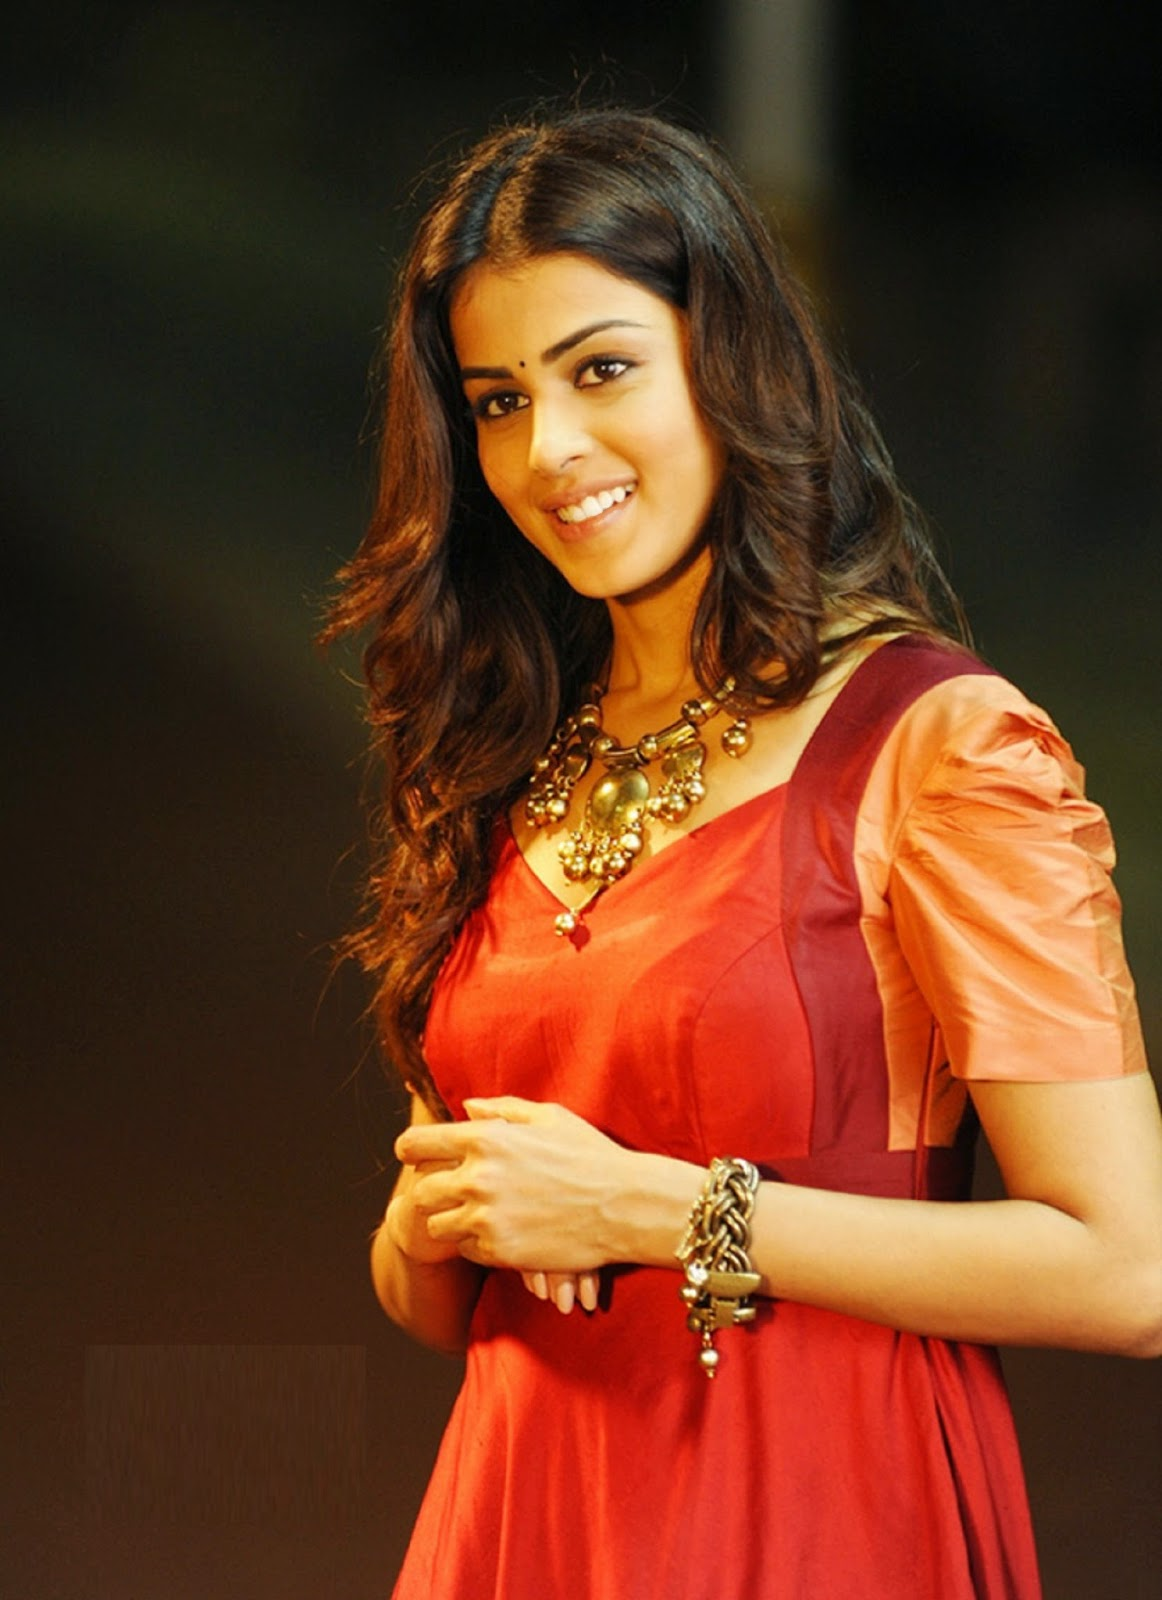 genelia d'souza hd wallpaper | free wallpapers download